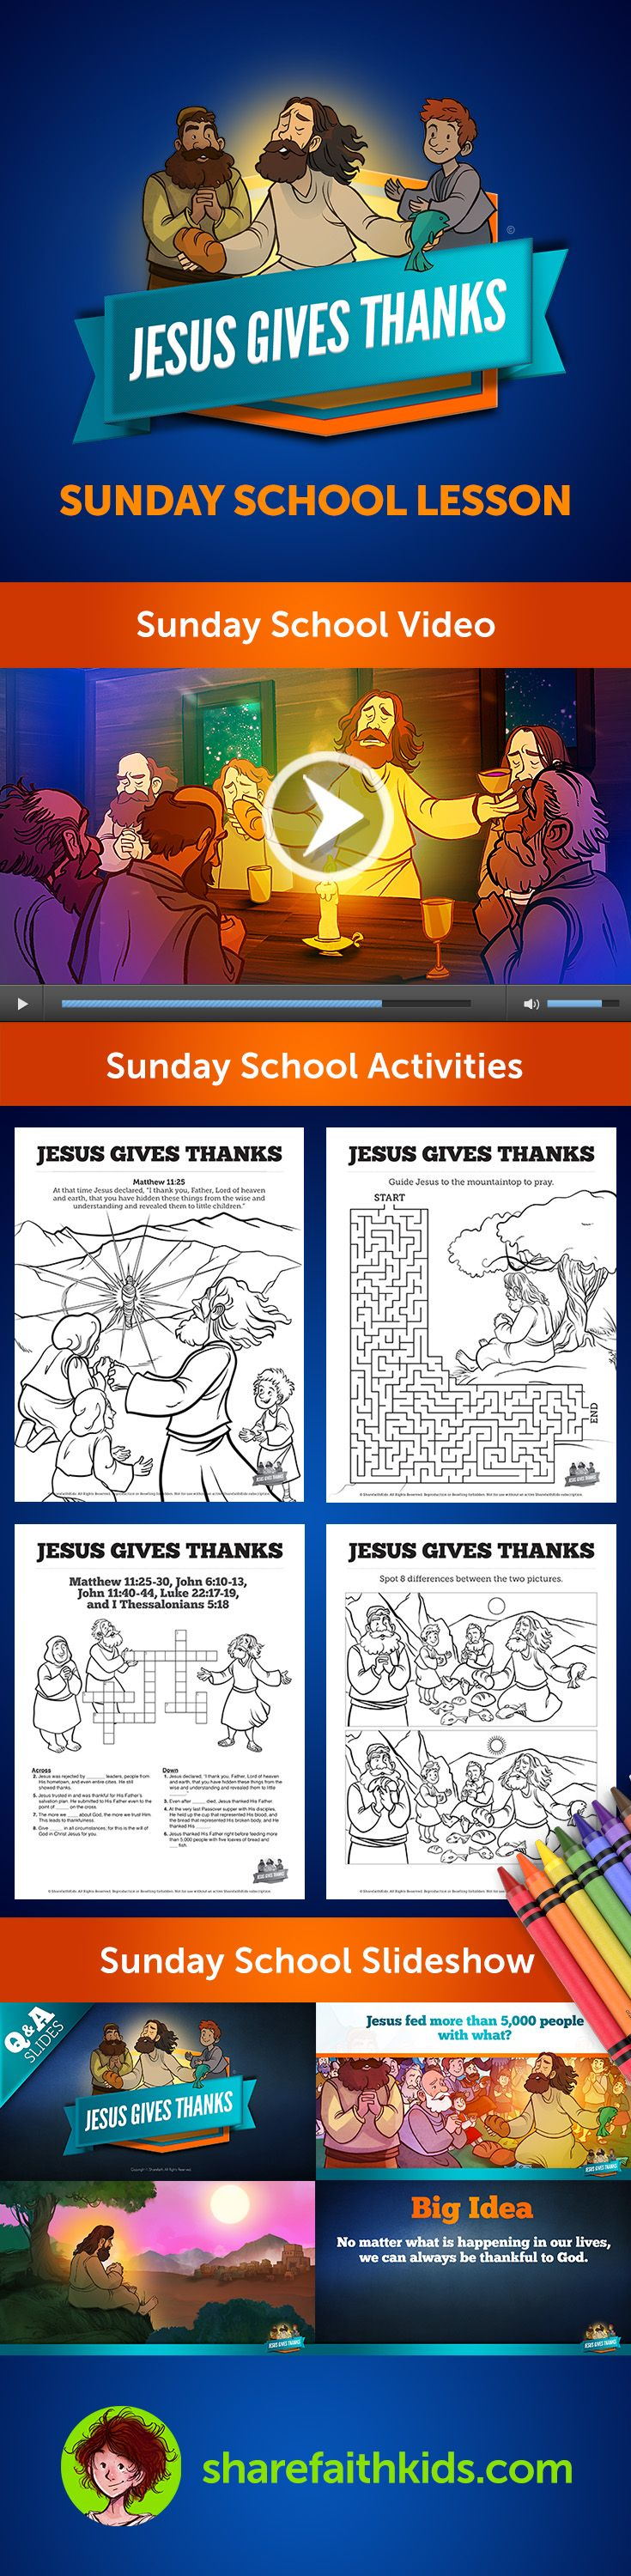 Matthew 11 Jesus Gives Thanks Kids Bible Lesson will lead your class through a discussion of gratitude as seen through the life of Jesus. Packed with tons of content, this lesson is a must-have for your upcoming Sunday School.